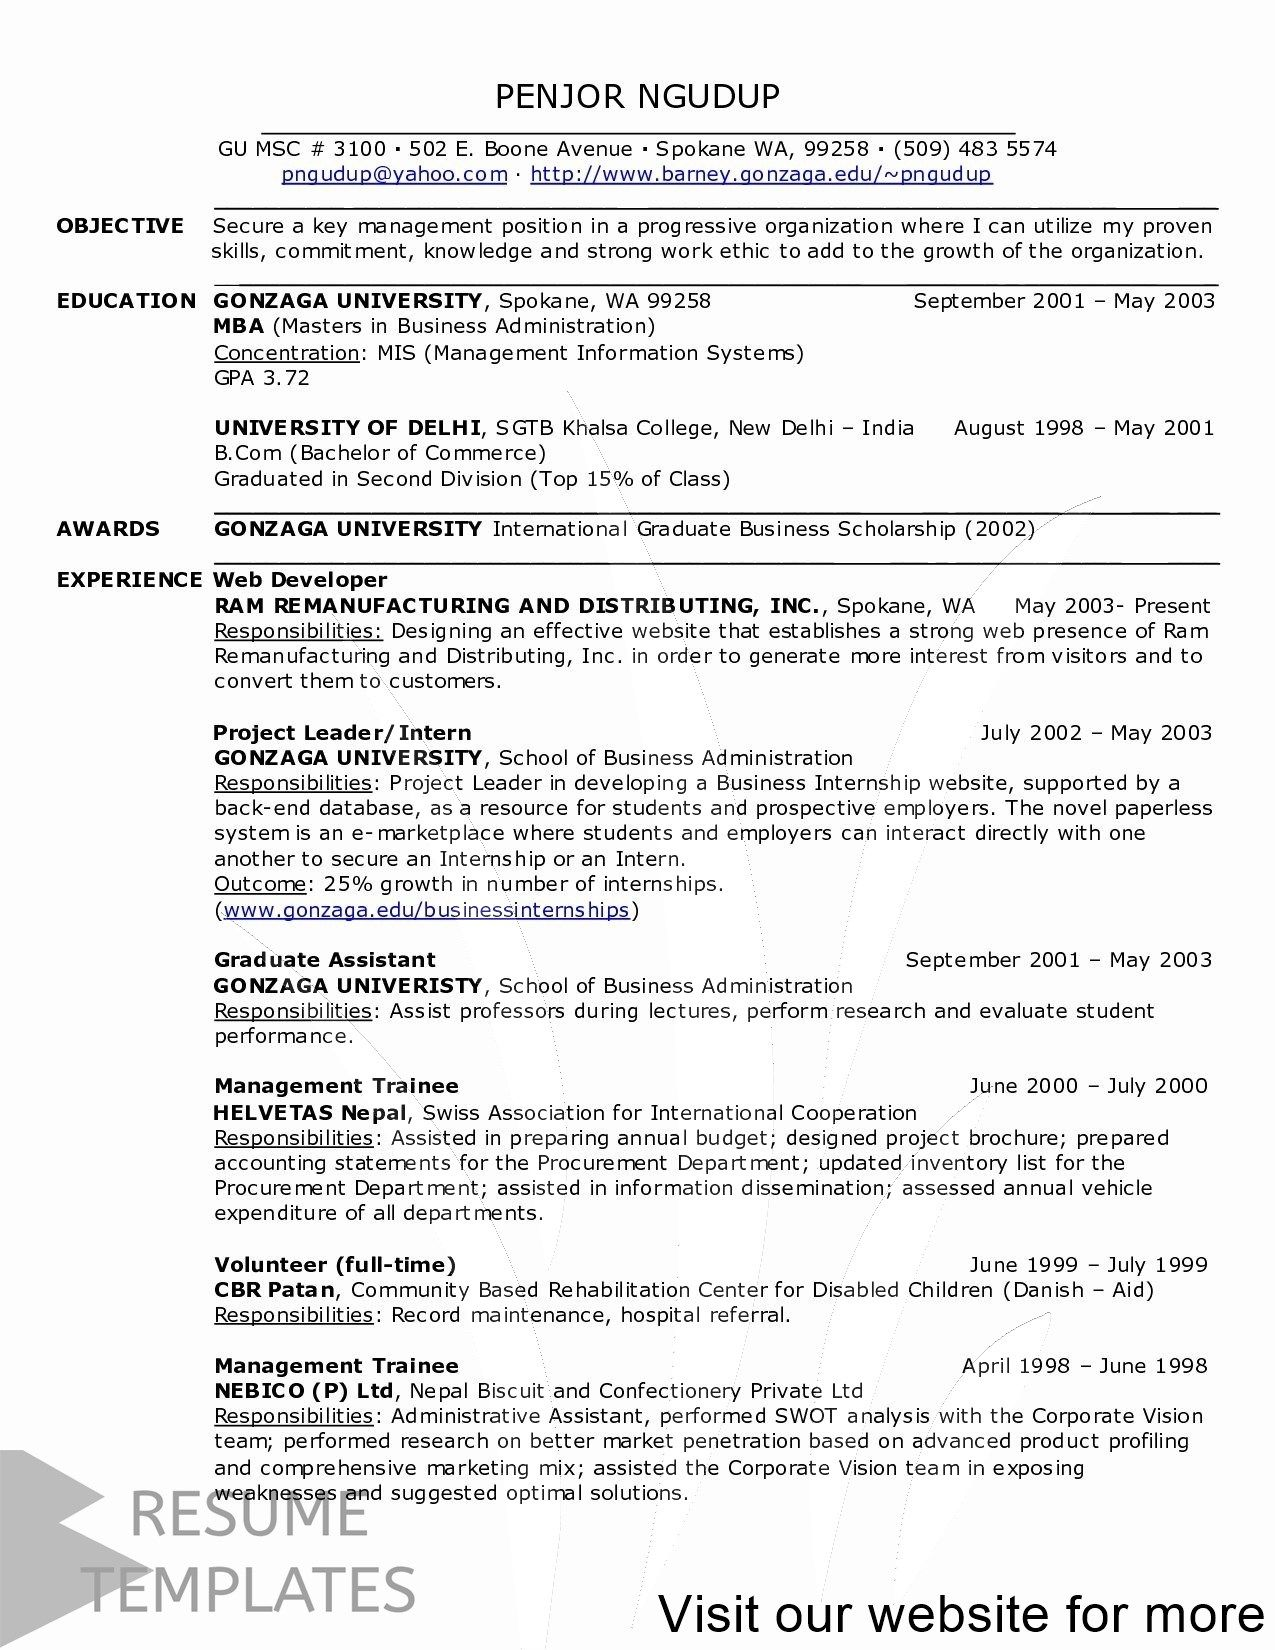 cute resume template free Professional in 2020 Resume